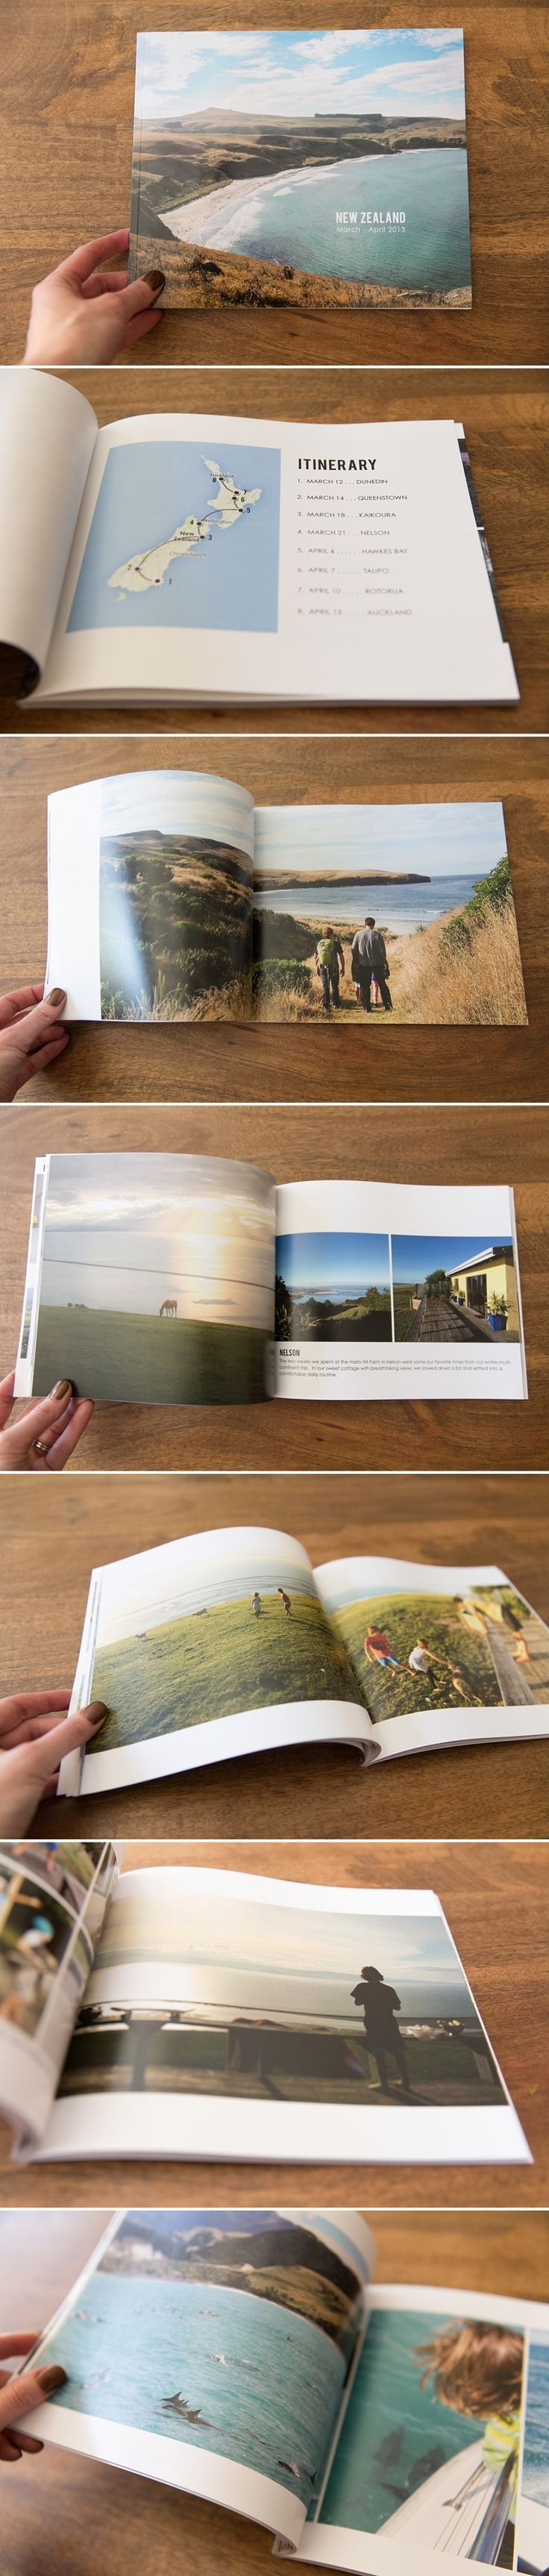 Photobook travel map with itinerary map and big photos from Suzanne O'Brien Studio